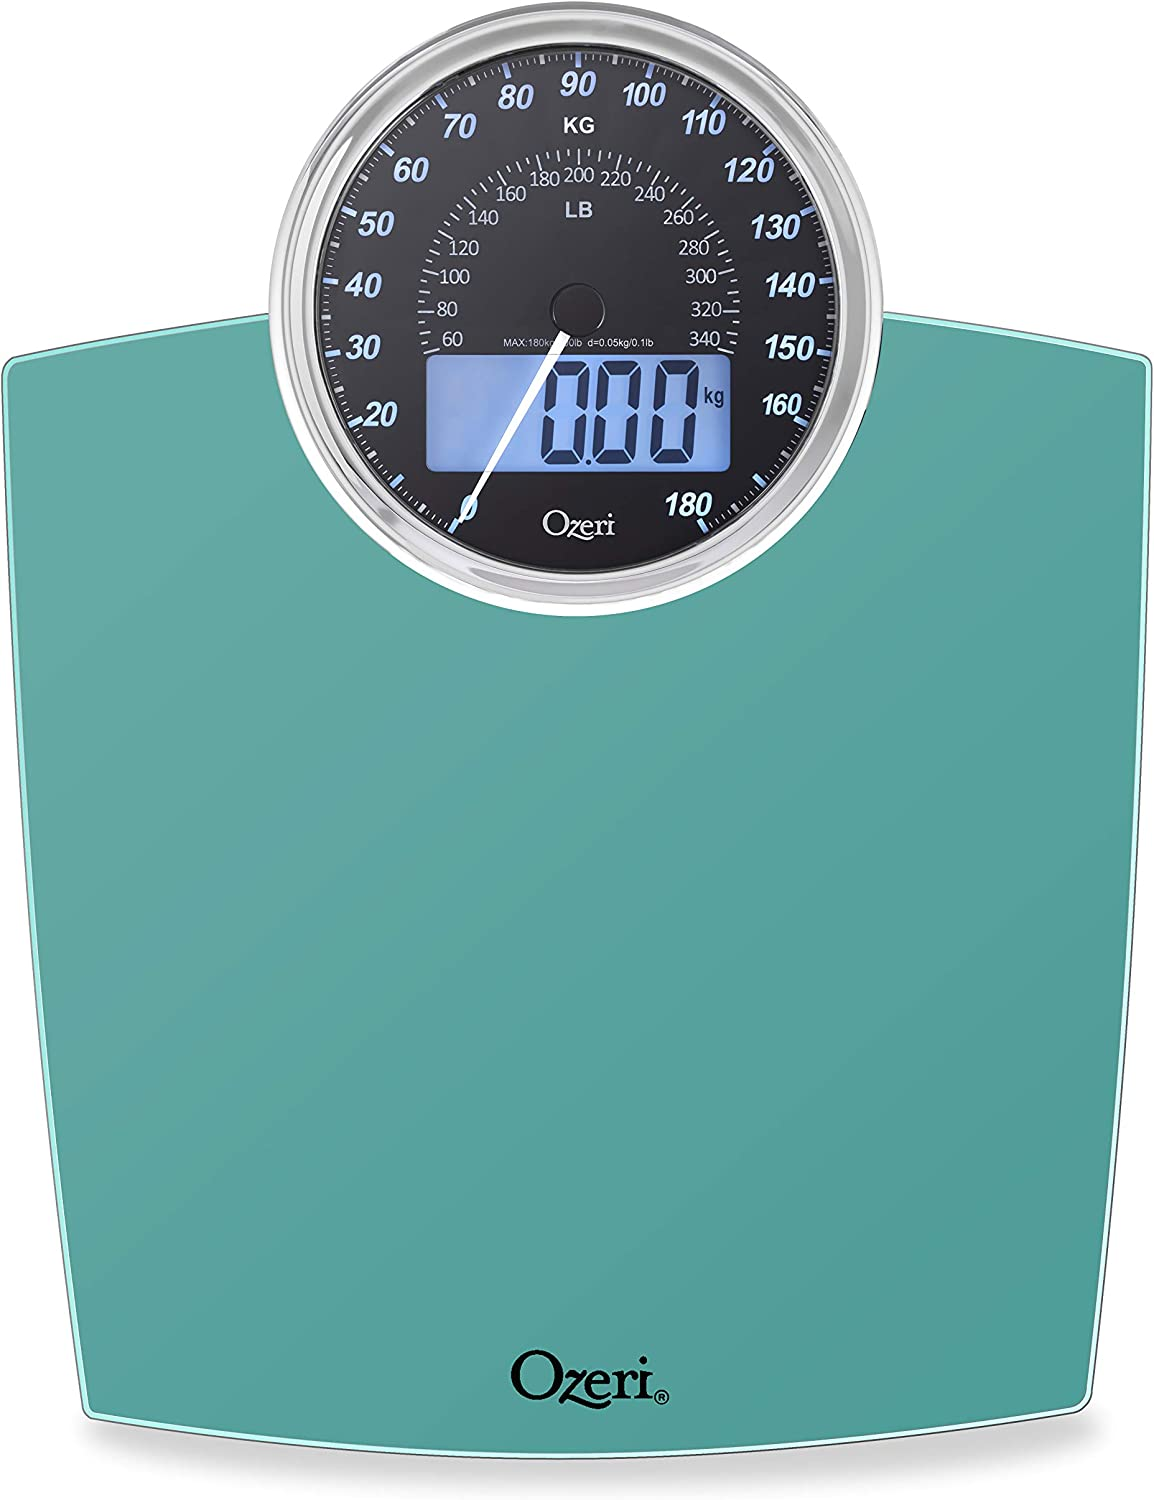 Amazon Com Ozeri Rev 400 Lbs 180 Kg Bathroom Scale With Electro Mechanical Weight Dial And 50 Gram Sensor Technology 0 1 Lbs 0 05 Kg Teal Blue Health Personal Care